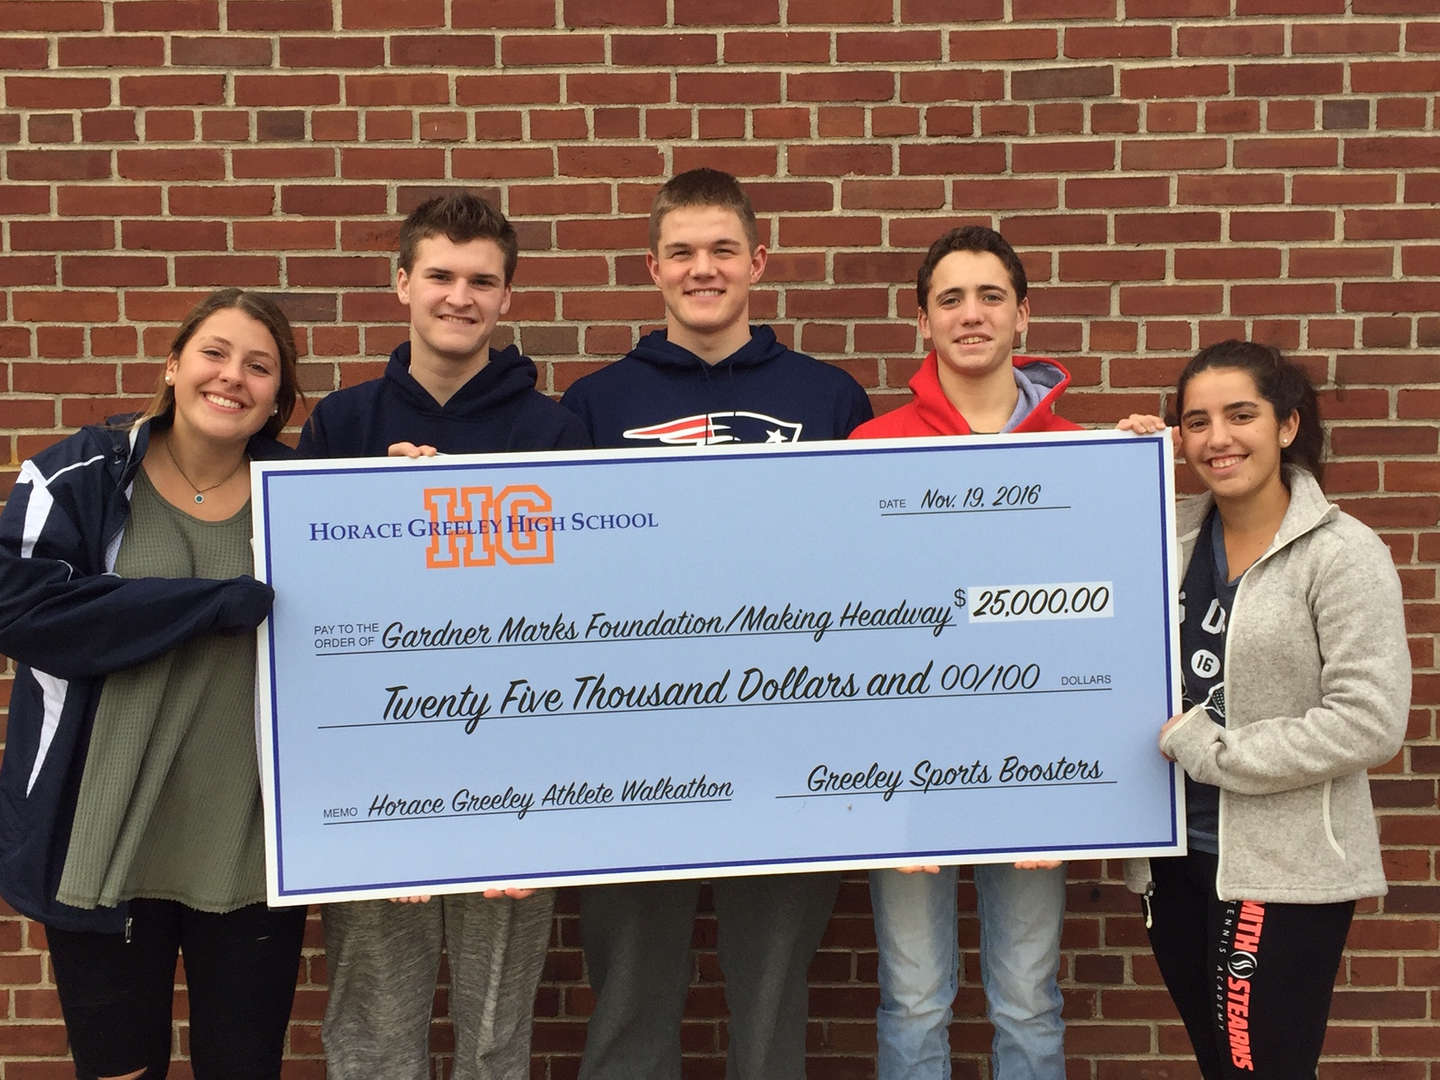 Horace Greeley students raised $25,000 for the Gardner Marks Foundation an organization committed to raising funds for Leukemia research.